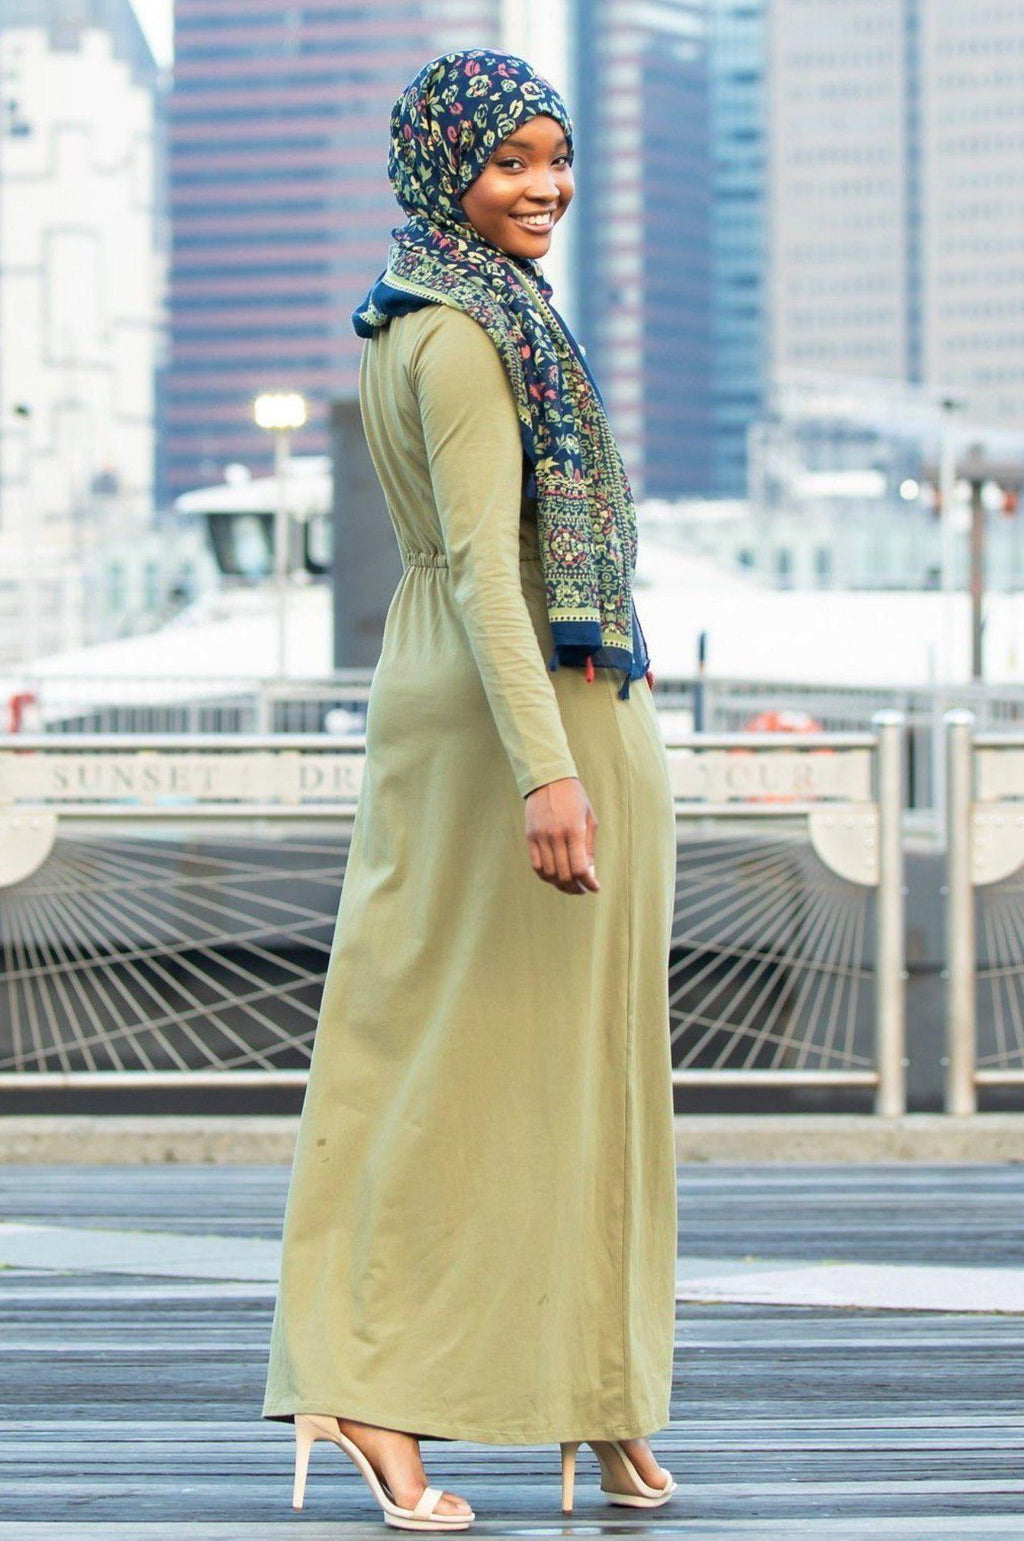 Sage Green Drawstring Cotton Long Sleeve Maxi Dress-Clearance - Abaya, Hijabs, Jilbabs, on sale now at UrbanModesty.com